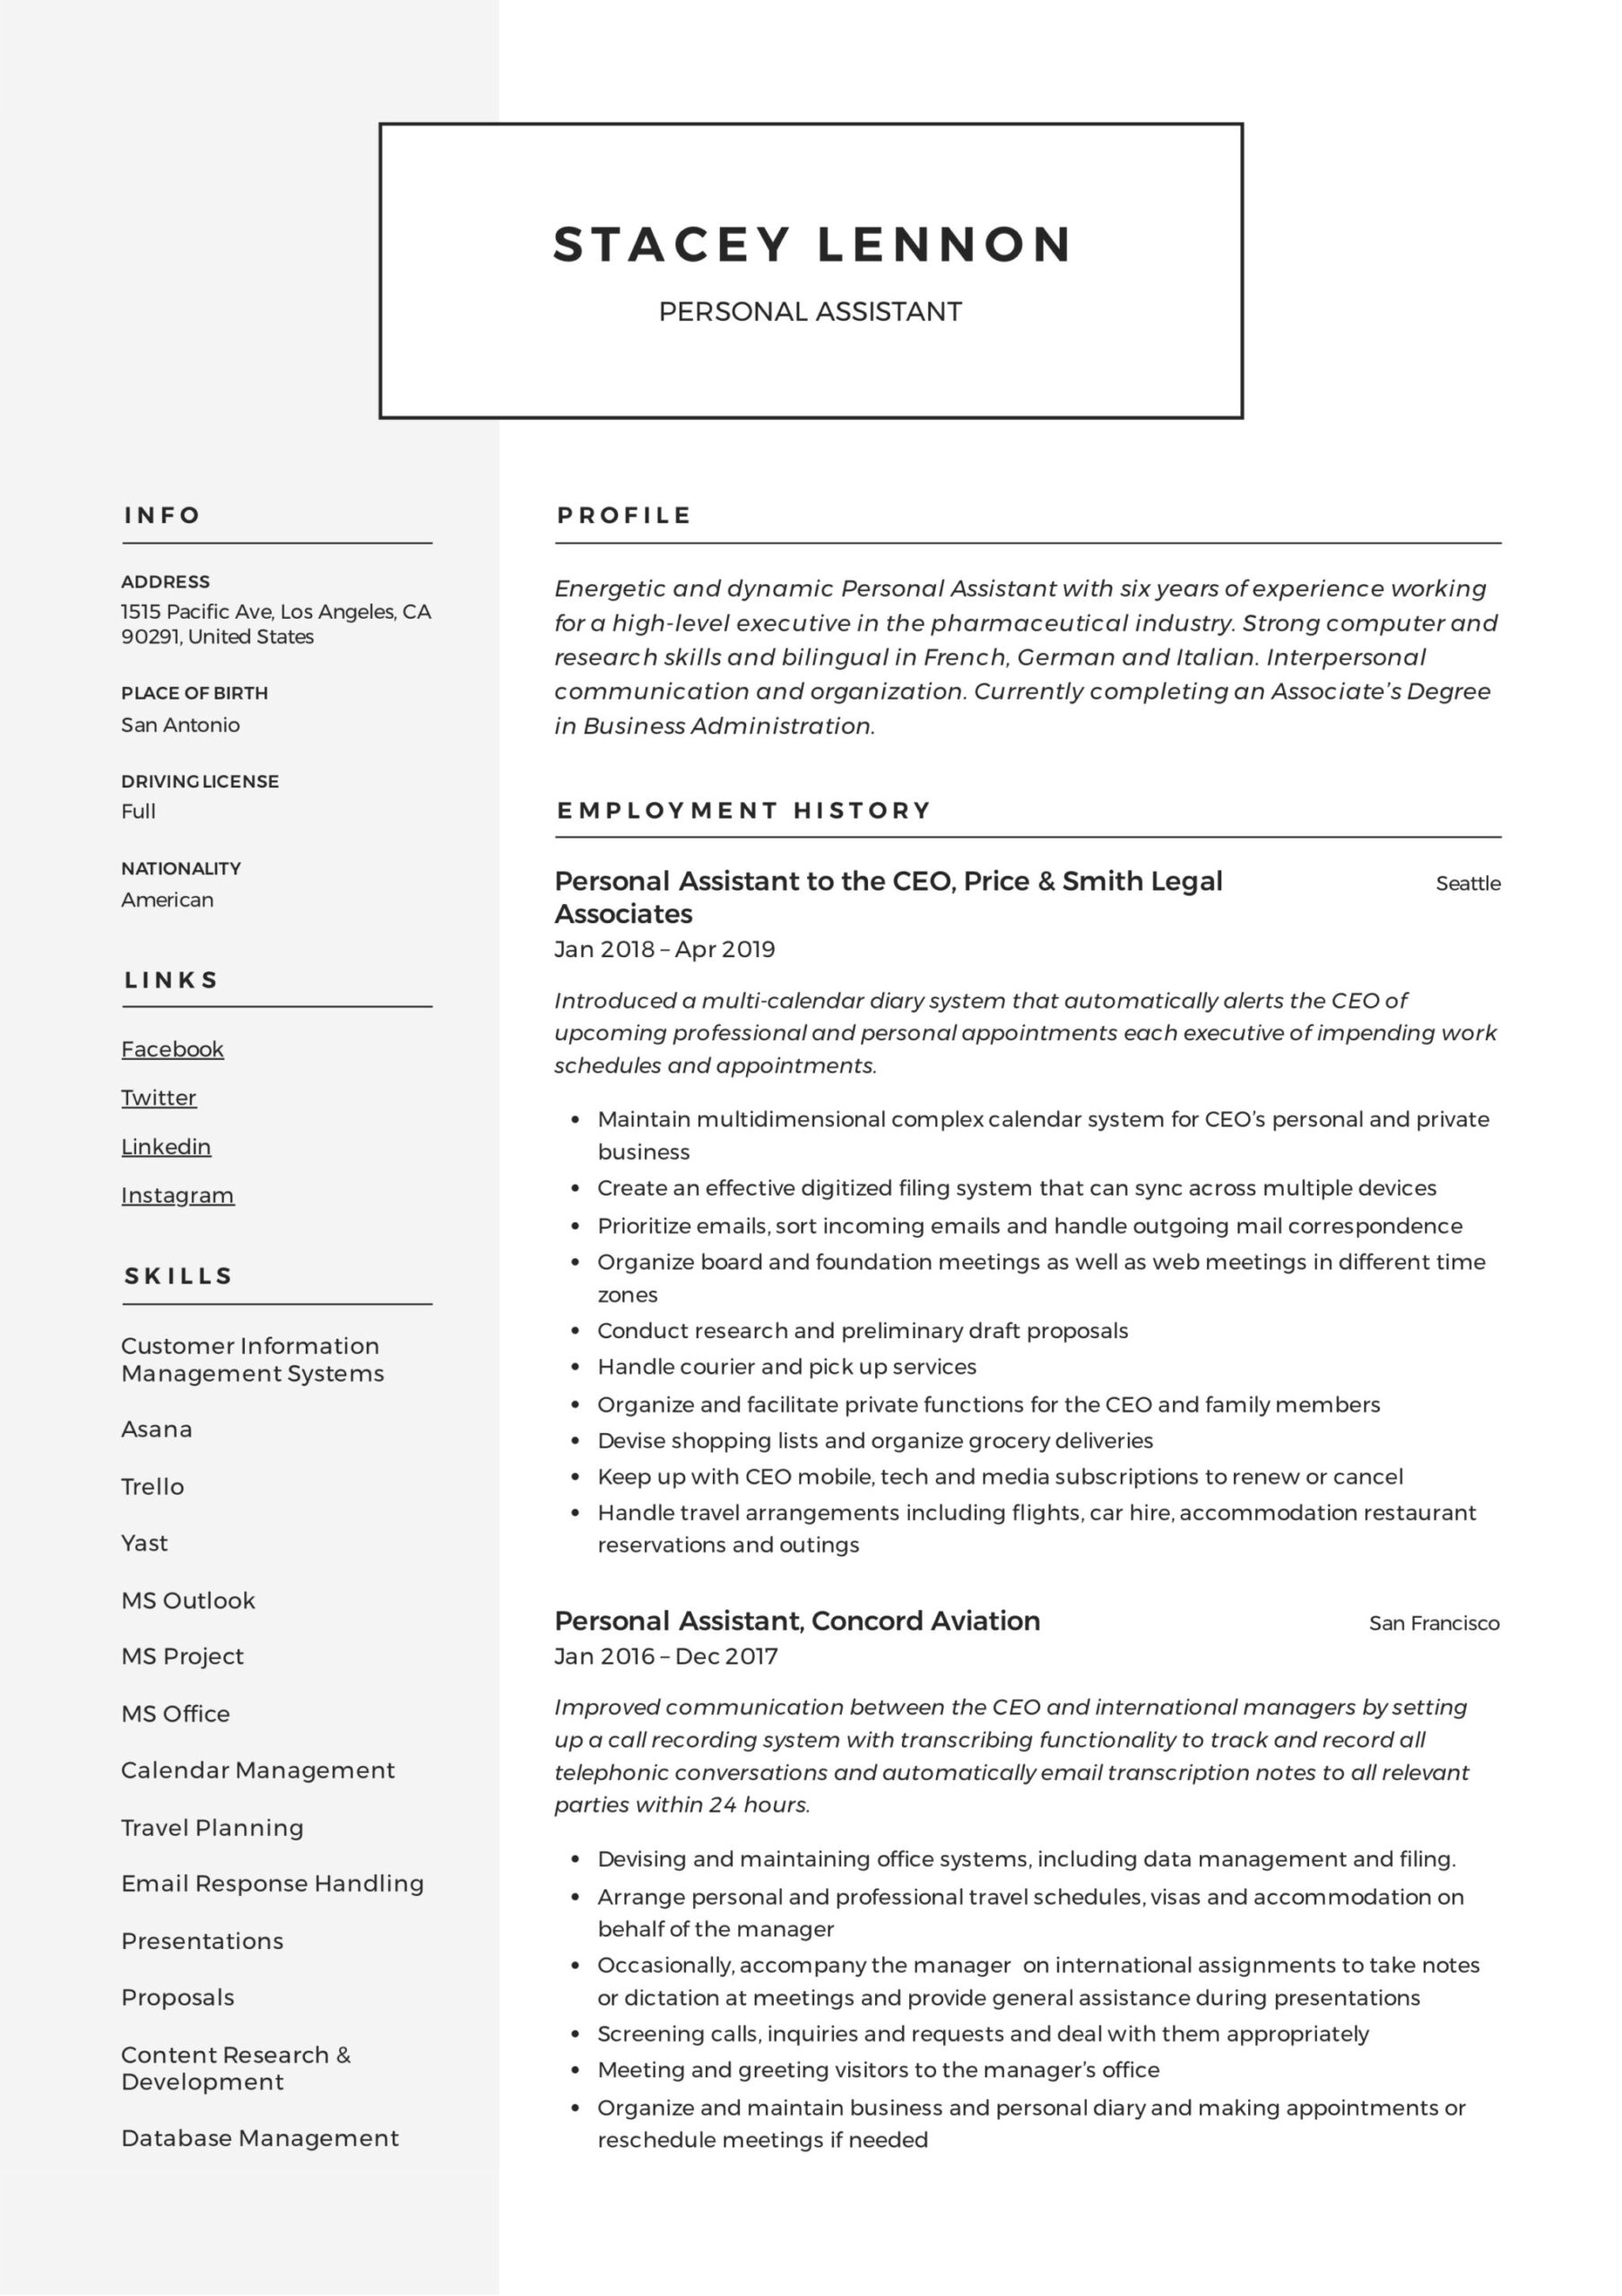 personal assistant resume writing guide templates pdf responsibilities phone icon for Resume Personal Assistant Responsibilities Resume